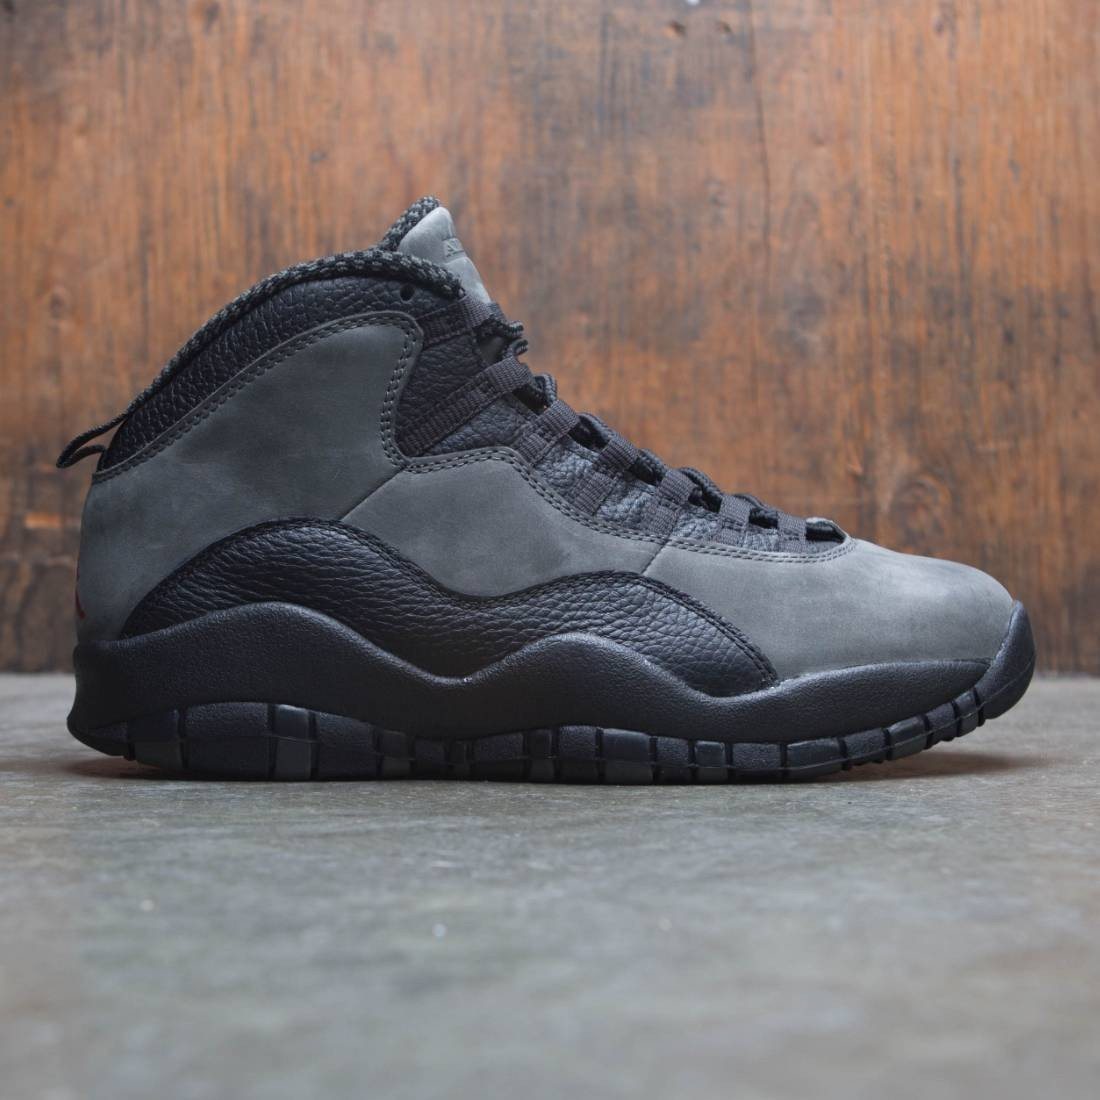 87a952261c0723 jordan men air jordan 10 retro black